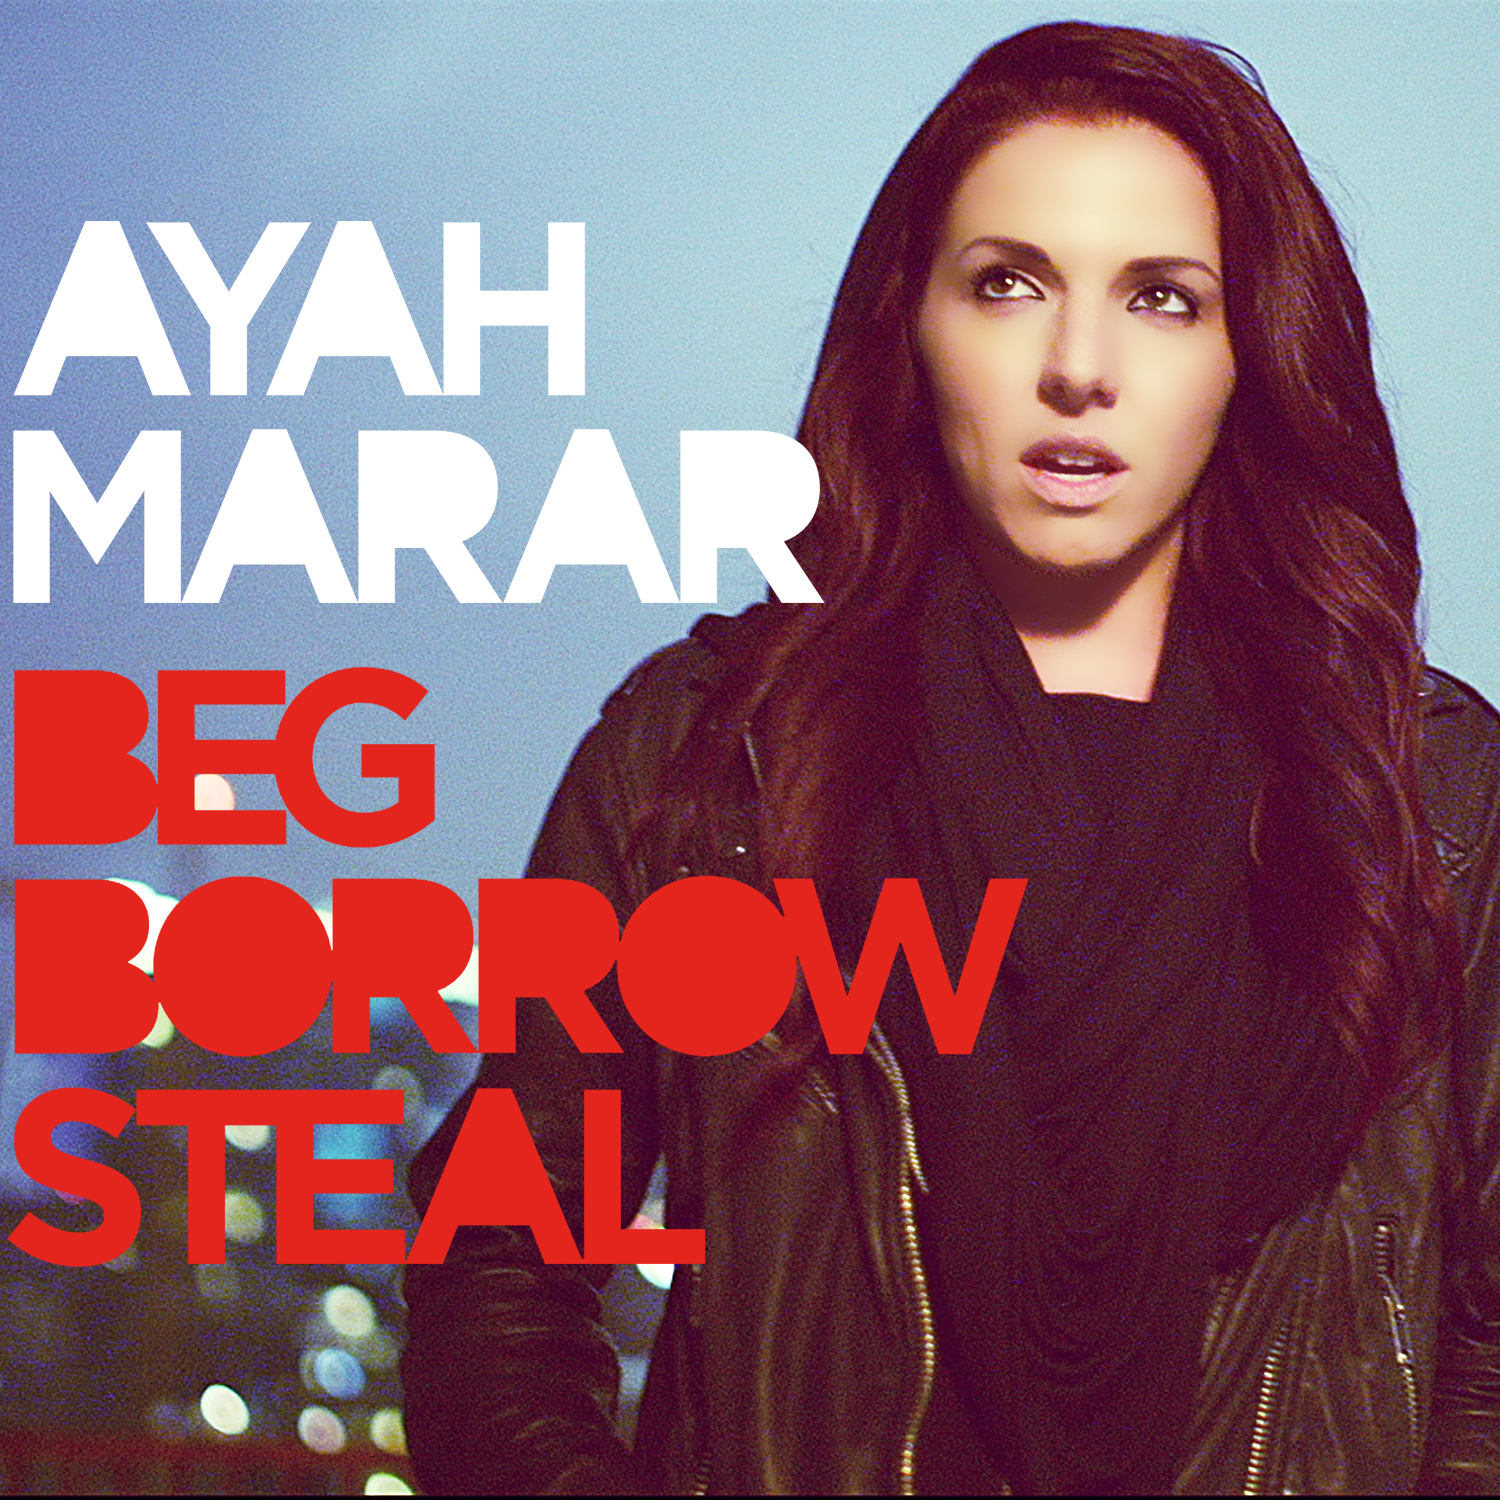 beg borrow steal cover art2